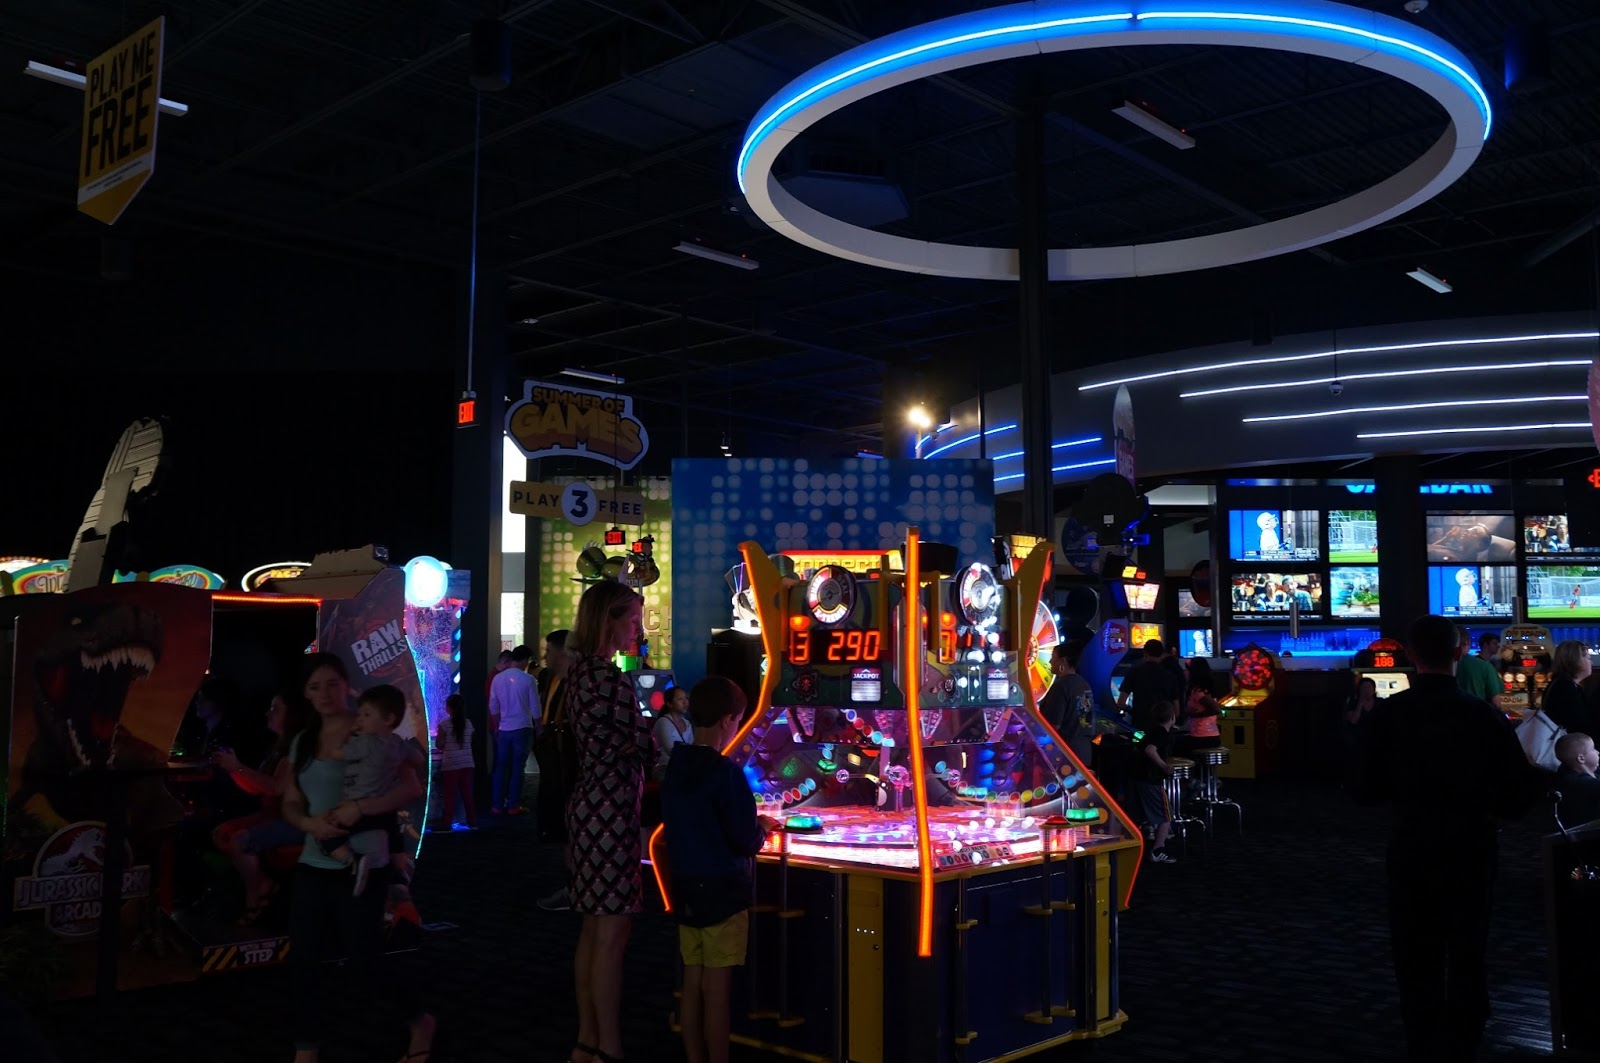 With Dave's name first because he won a coin toss, they opened the first Dave & Buster's in December Today, much has changed. Each store has more state-of-the-art games than ever, more mouth-watering menu items and the most innovative drinks anywhere/5().